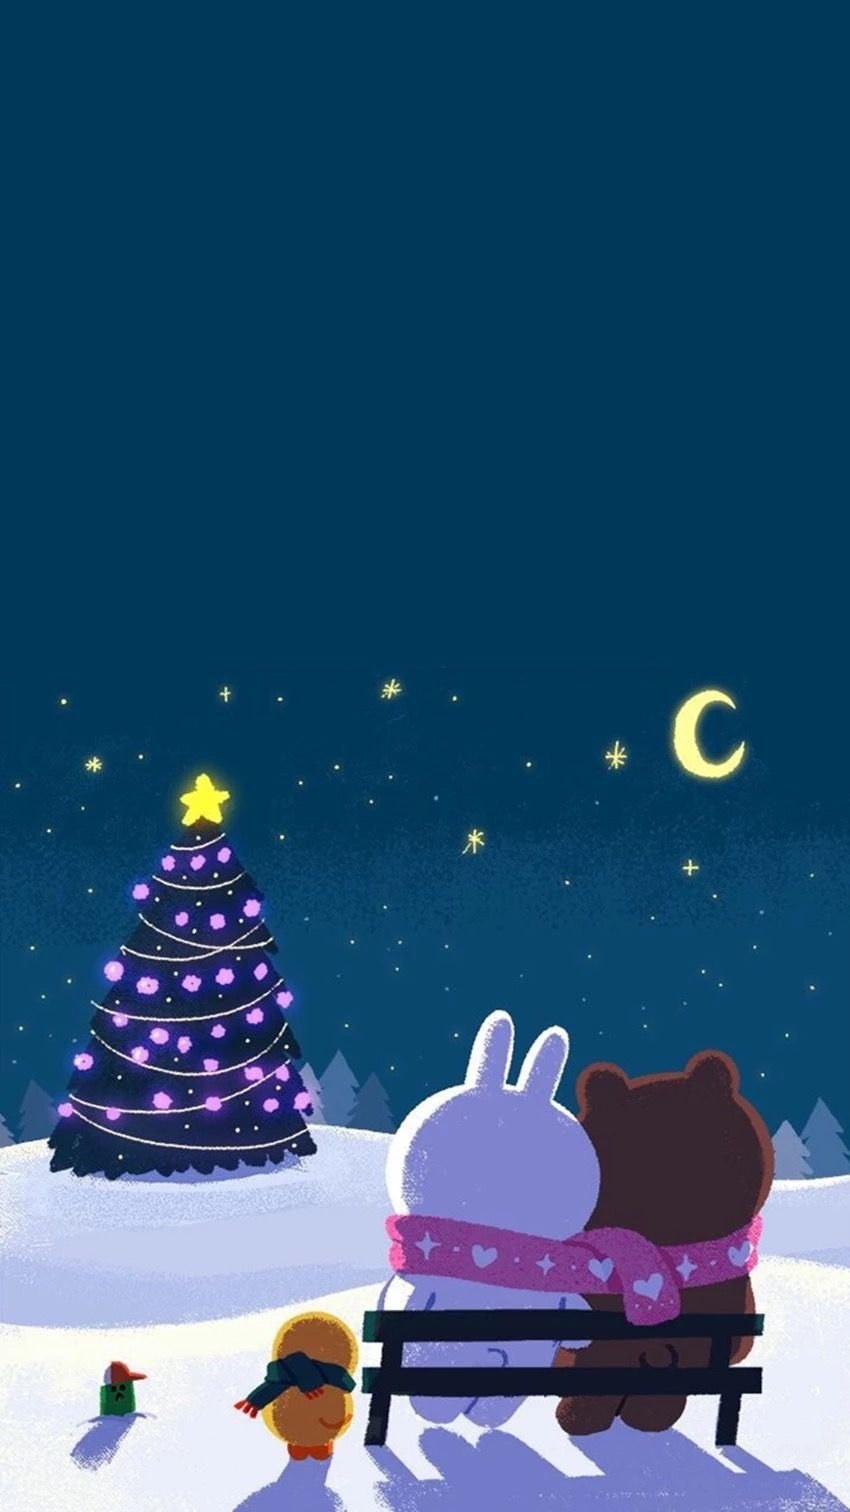 Pin By Pankeawป านแก ว On Wallpaper Line Cute Christmas Wallpaper Line Friends Christmas Wallpaper